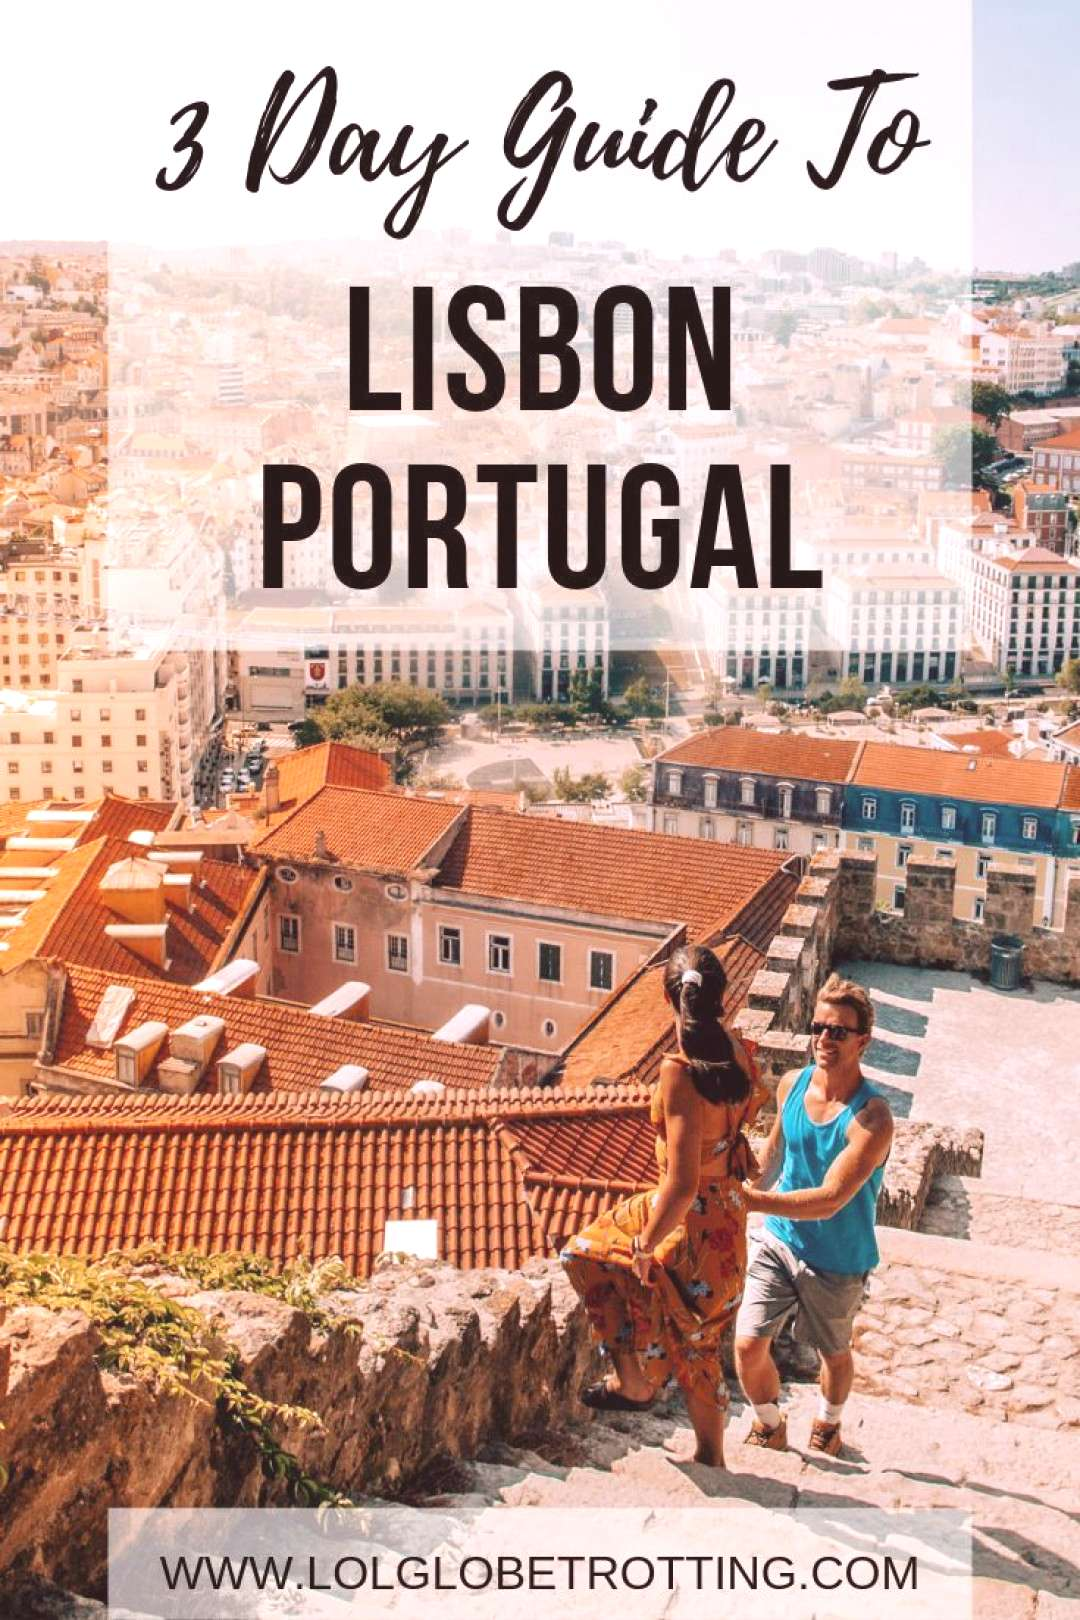 Lisbon Travel Blog - Landmarks, Beaches, and Adventure 3 Day Guide to Lisbon, Portugal. This travel